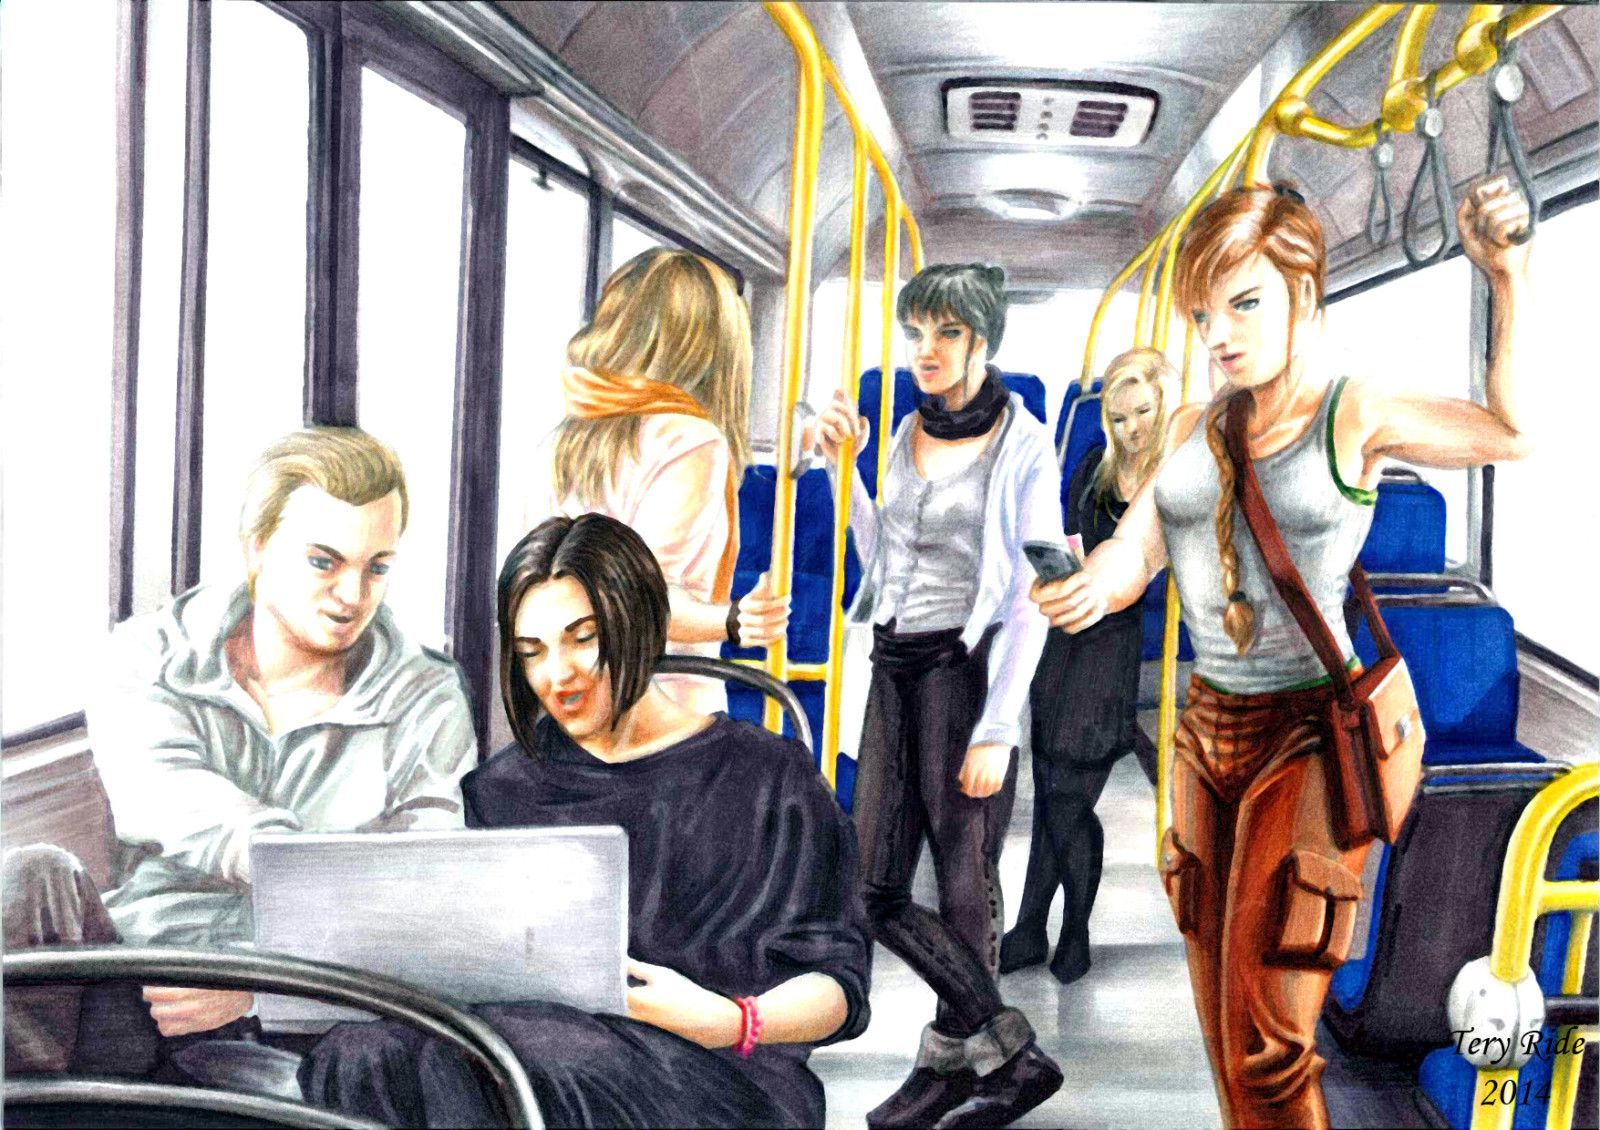 Lara Everyday - Bus